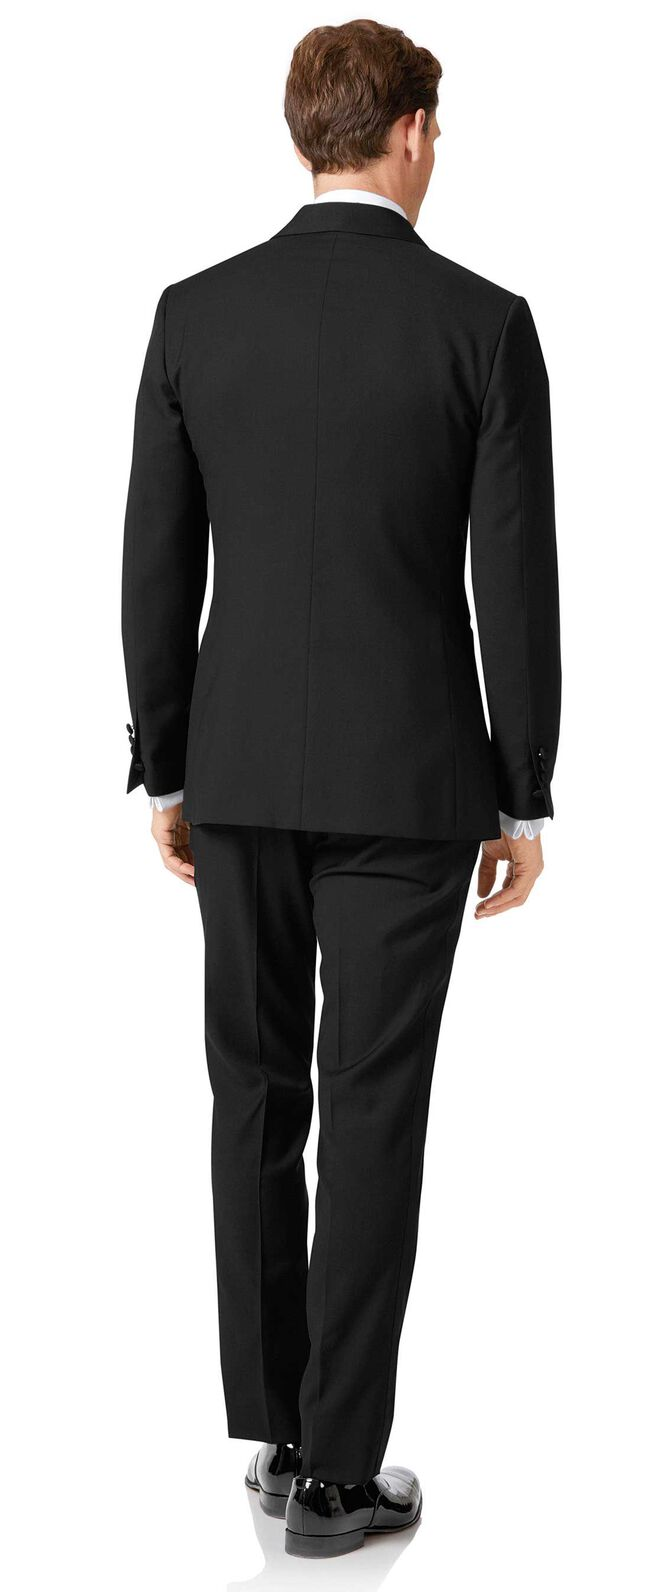 Black extra slim fit dinner suit